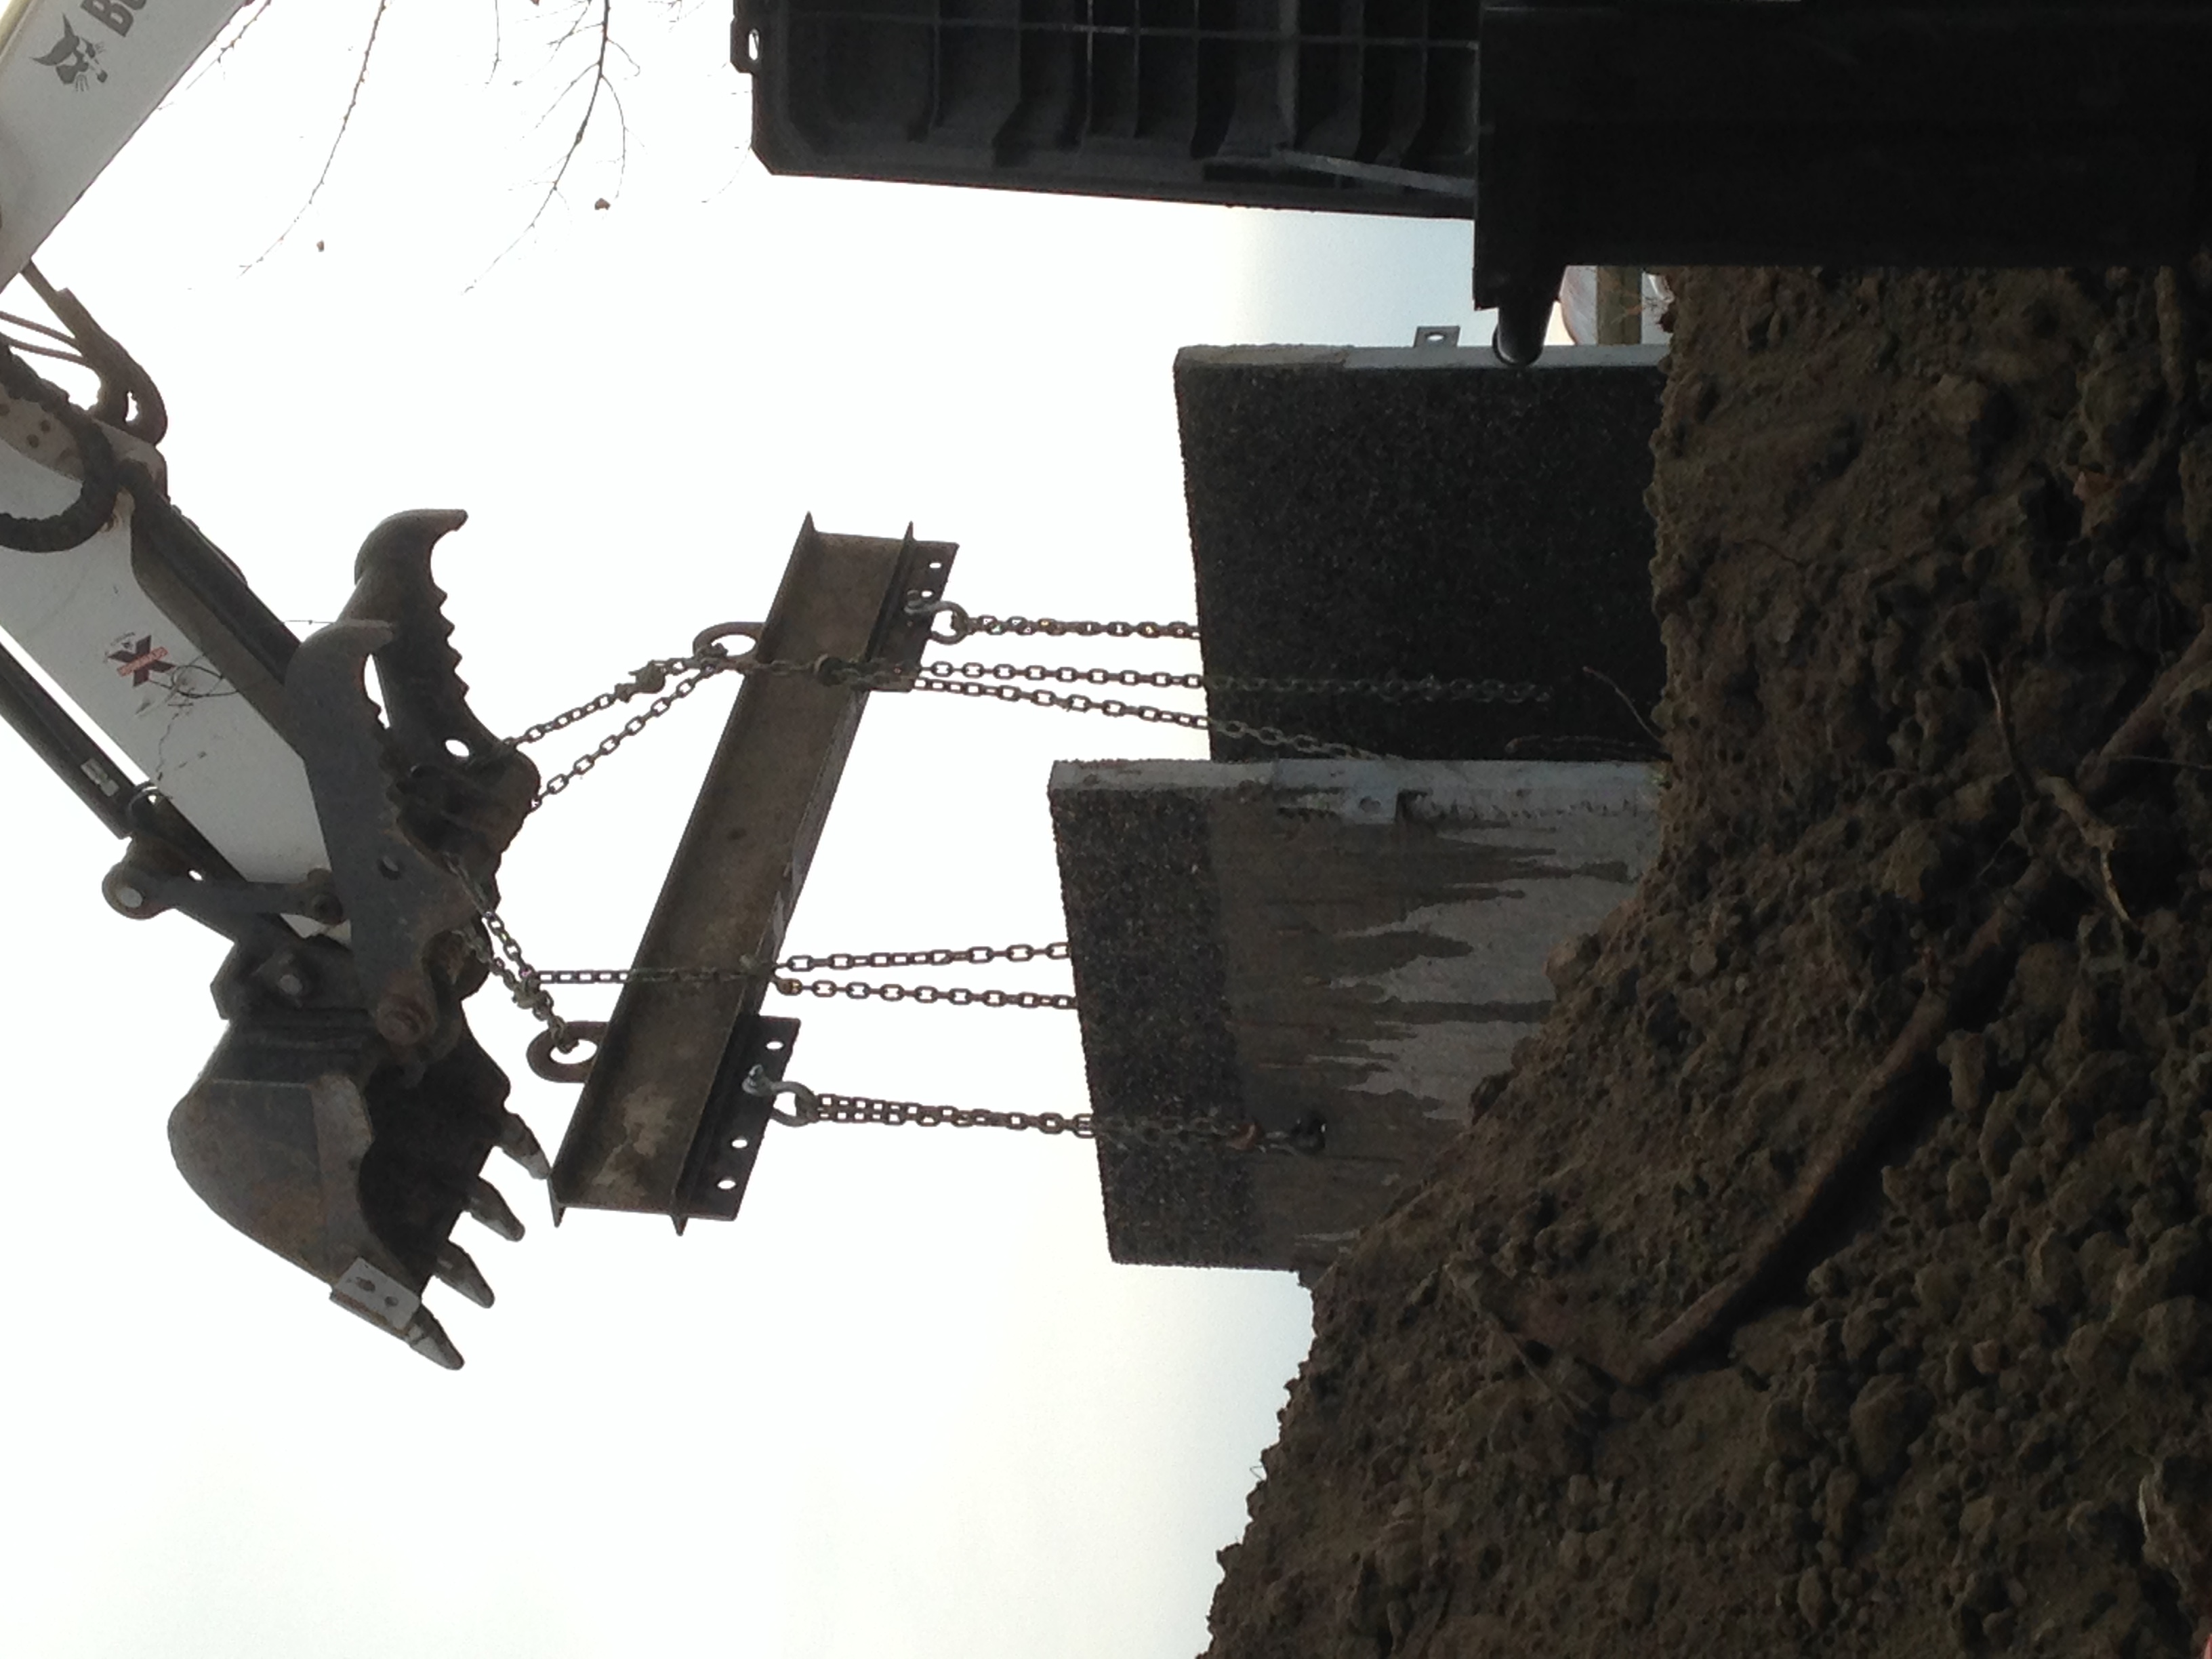 Craning Spreader Bar Concrete Well